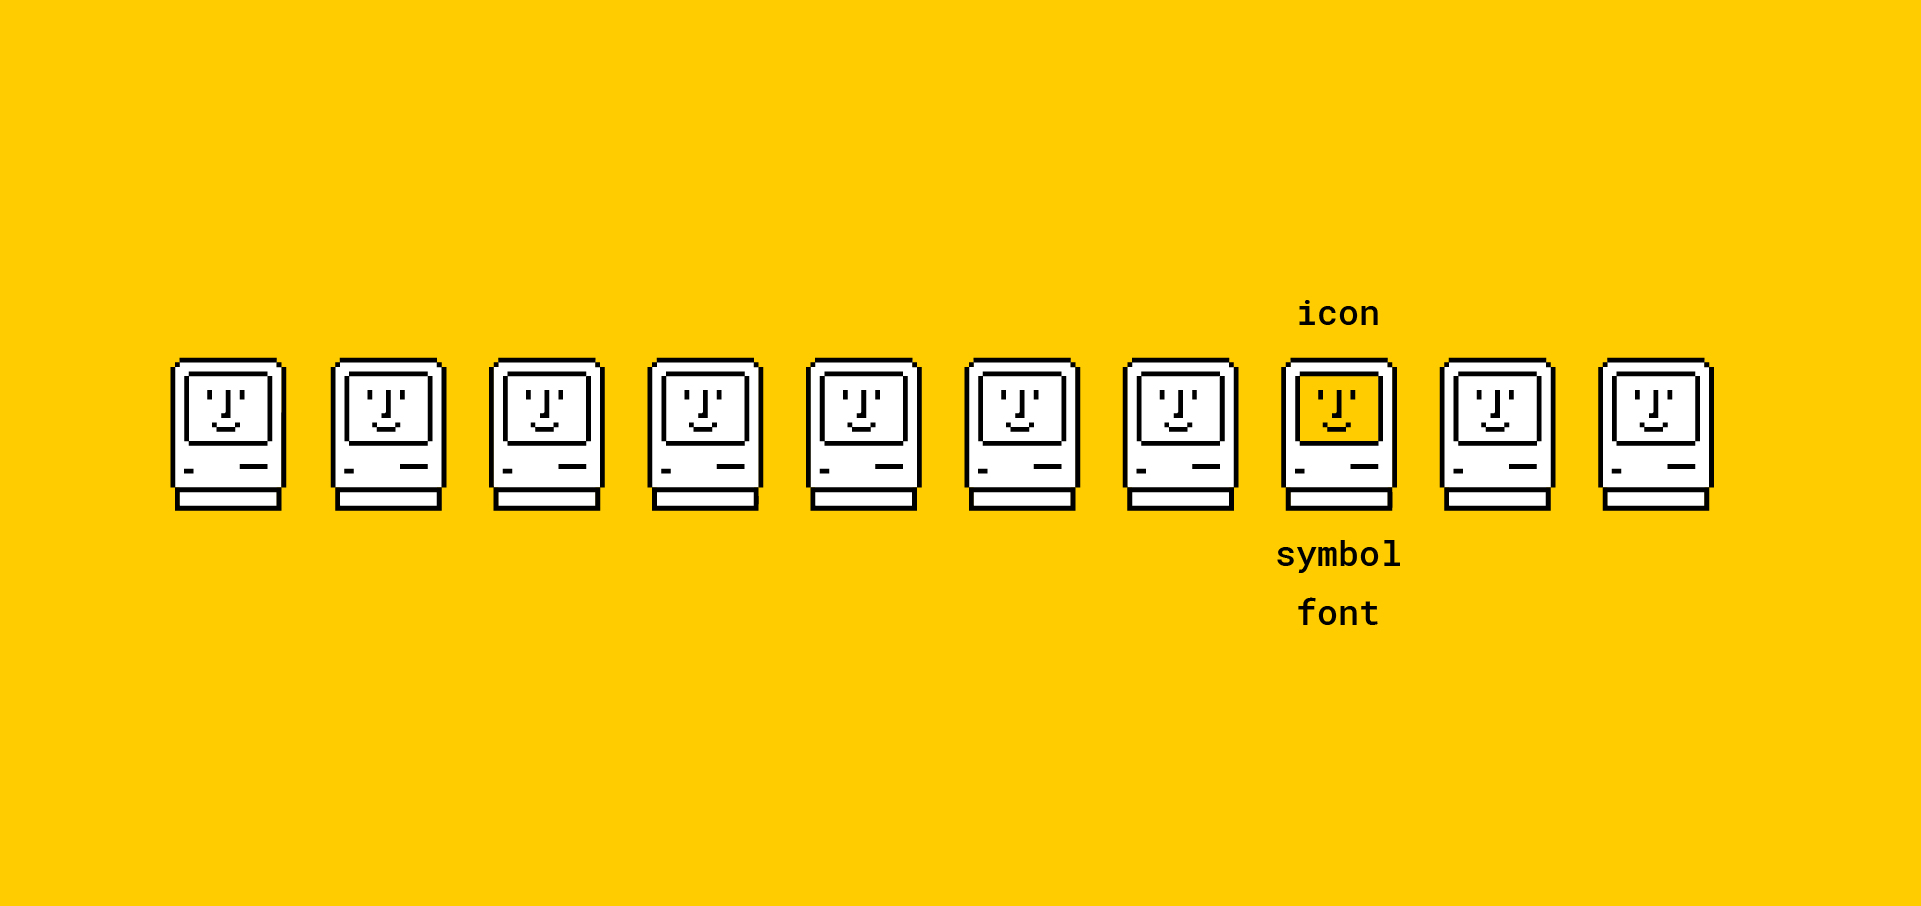 Wingdings, Dingbats and icons! Looking at some of the early digital icons plus some of our own recent designs.